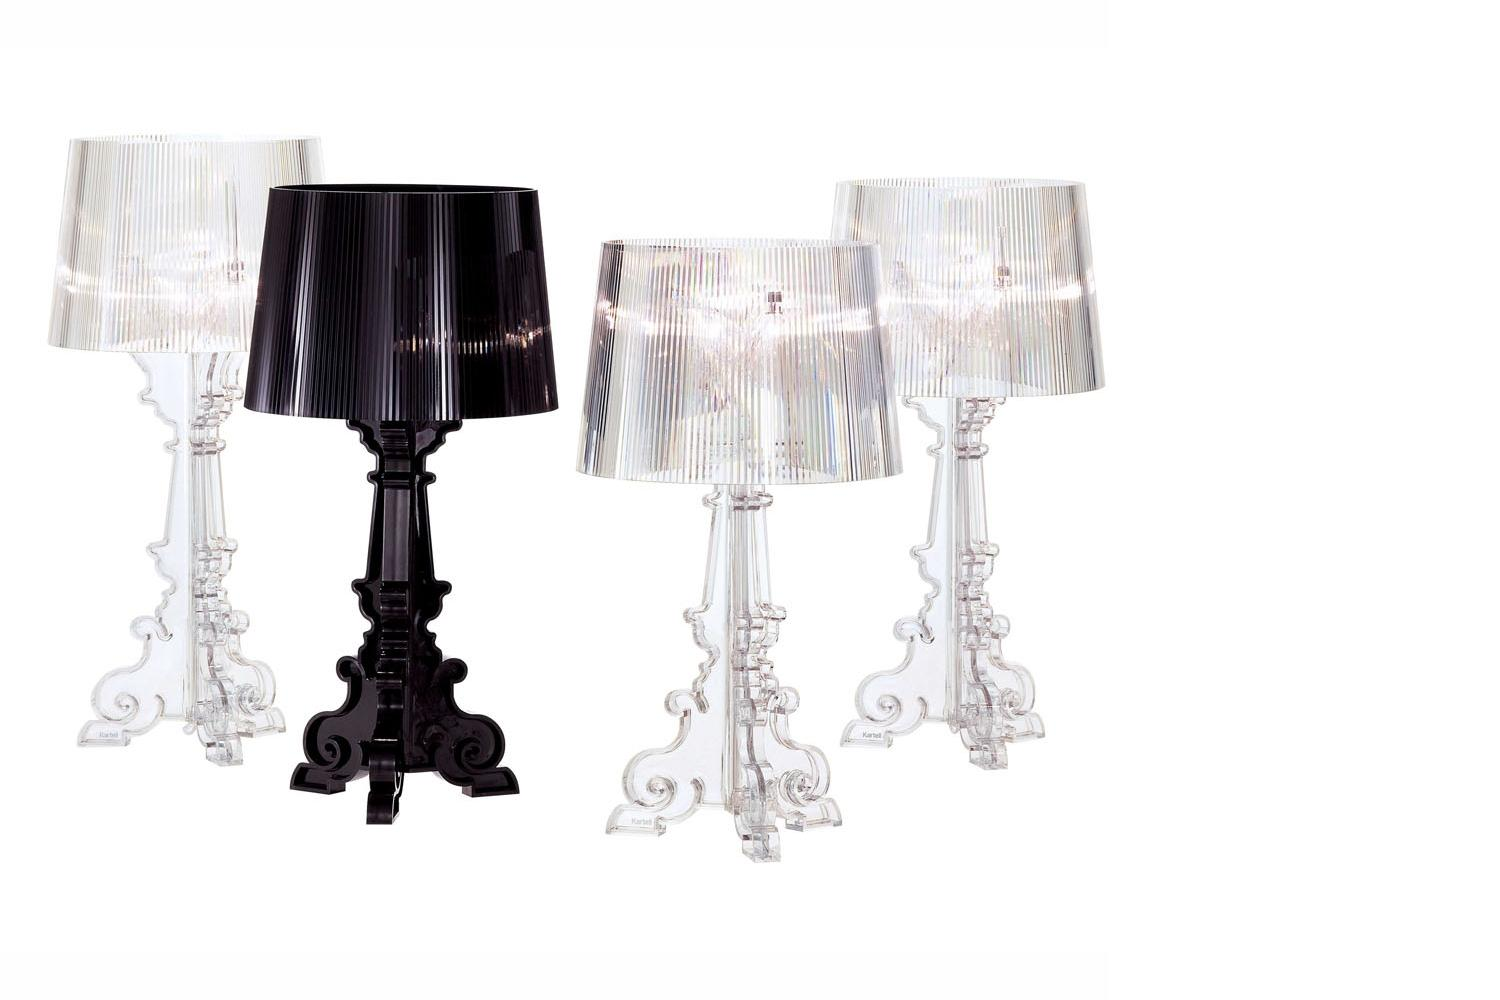 Lamp Kartell Bourgie Table Lamp By Ferruccio Laviani For Kartell Space Furniture